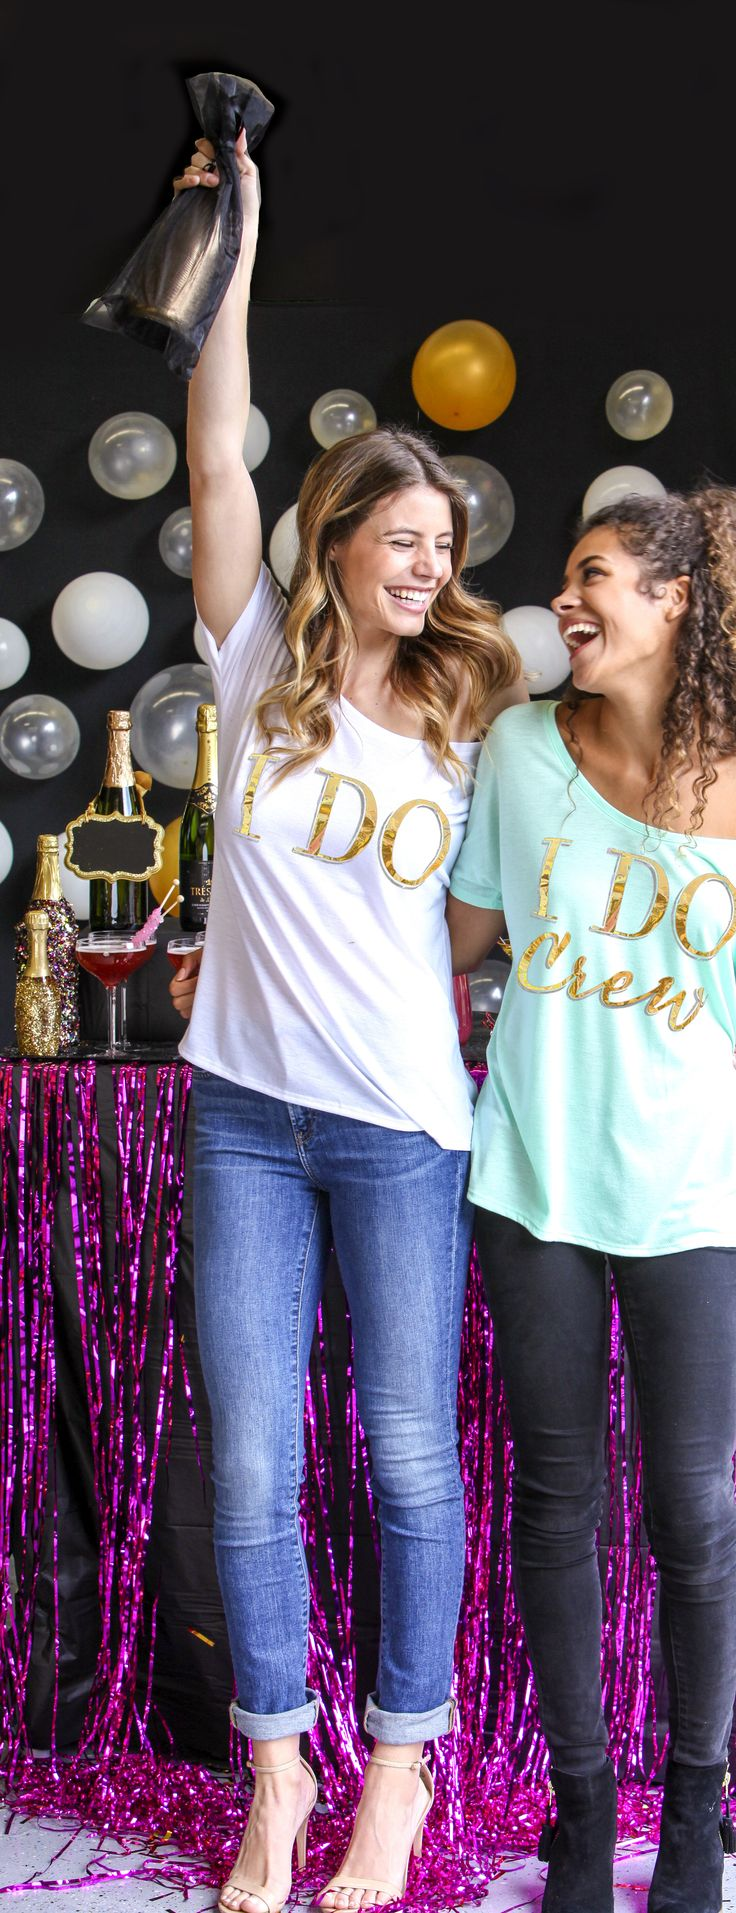 How to absolutely nail the bachelorette party? - start by visiting us for the best bachelorette party ideas, advice and lowest prices on Bachelorette Supplies!